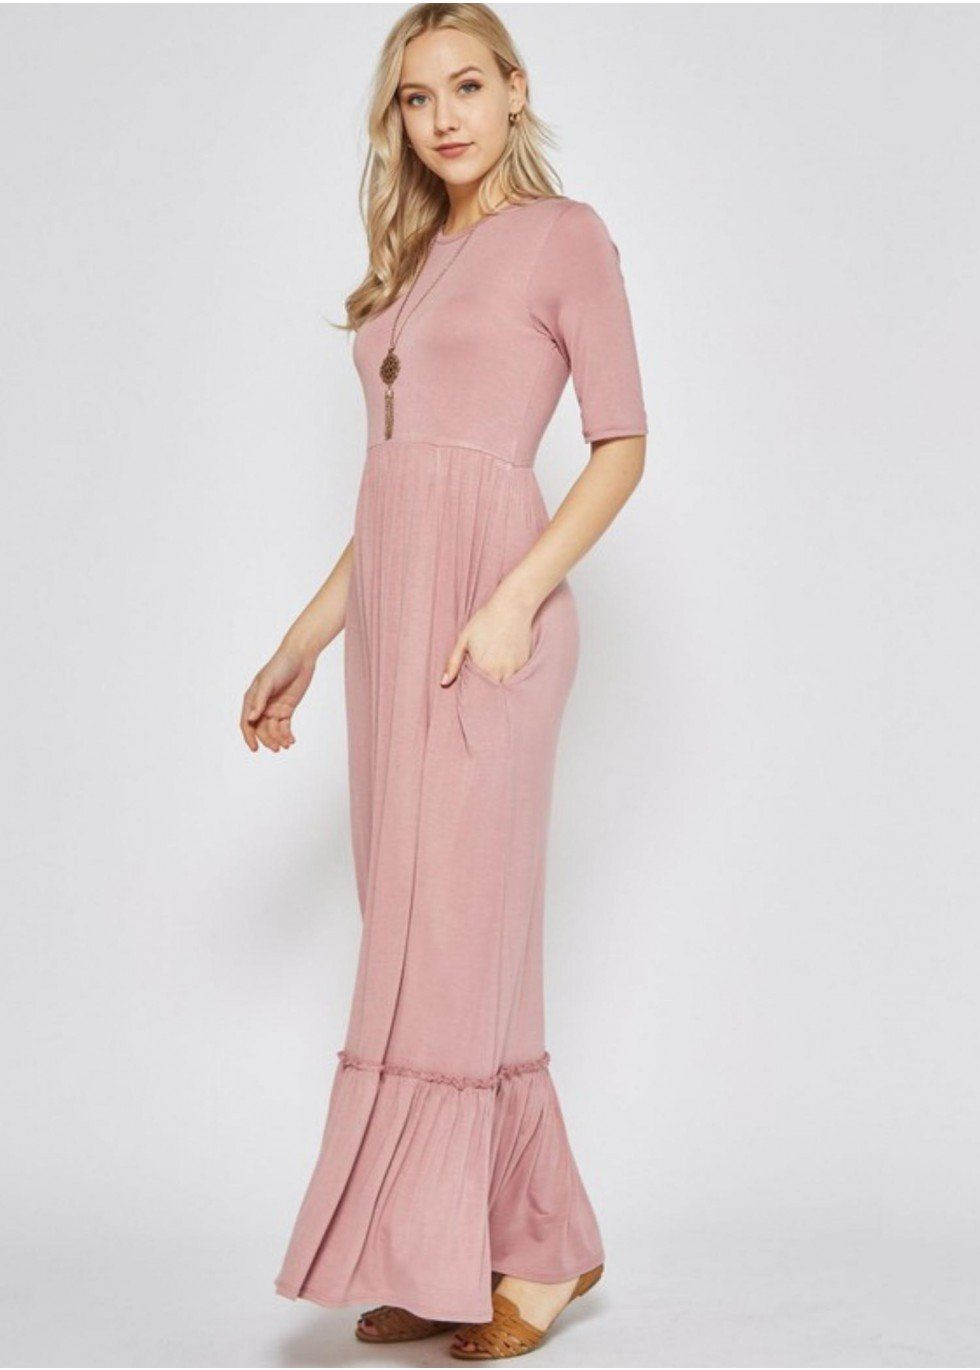 Solid rayon spandex high waist maxi dress featuring above elbow sleeve, tiered ruffle hem, and hidden pockets.